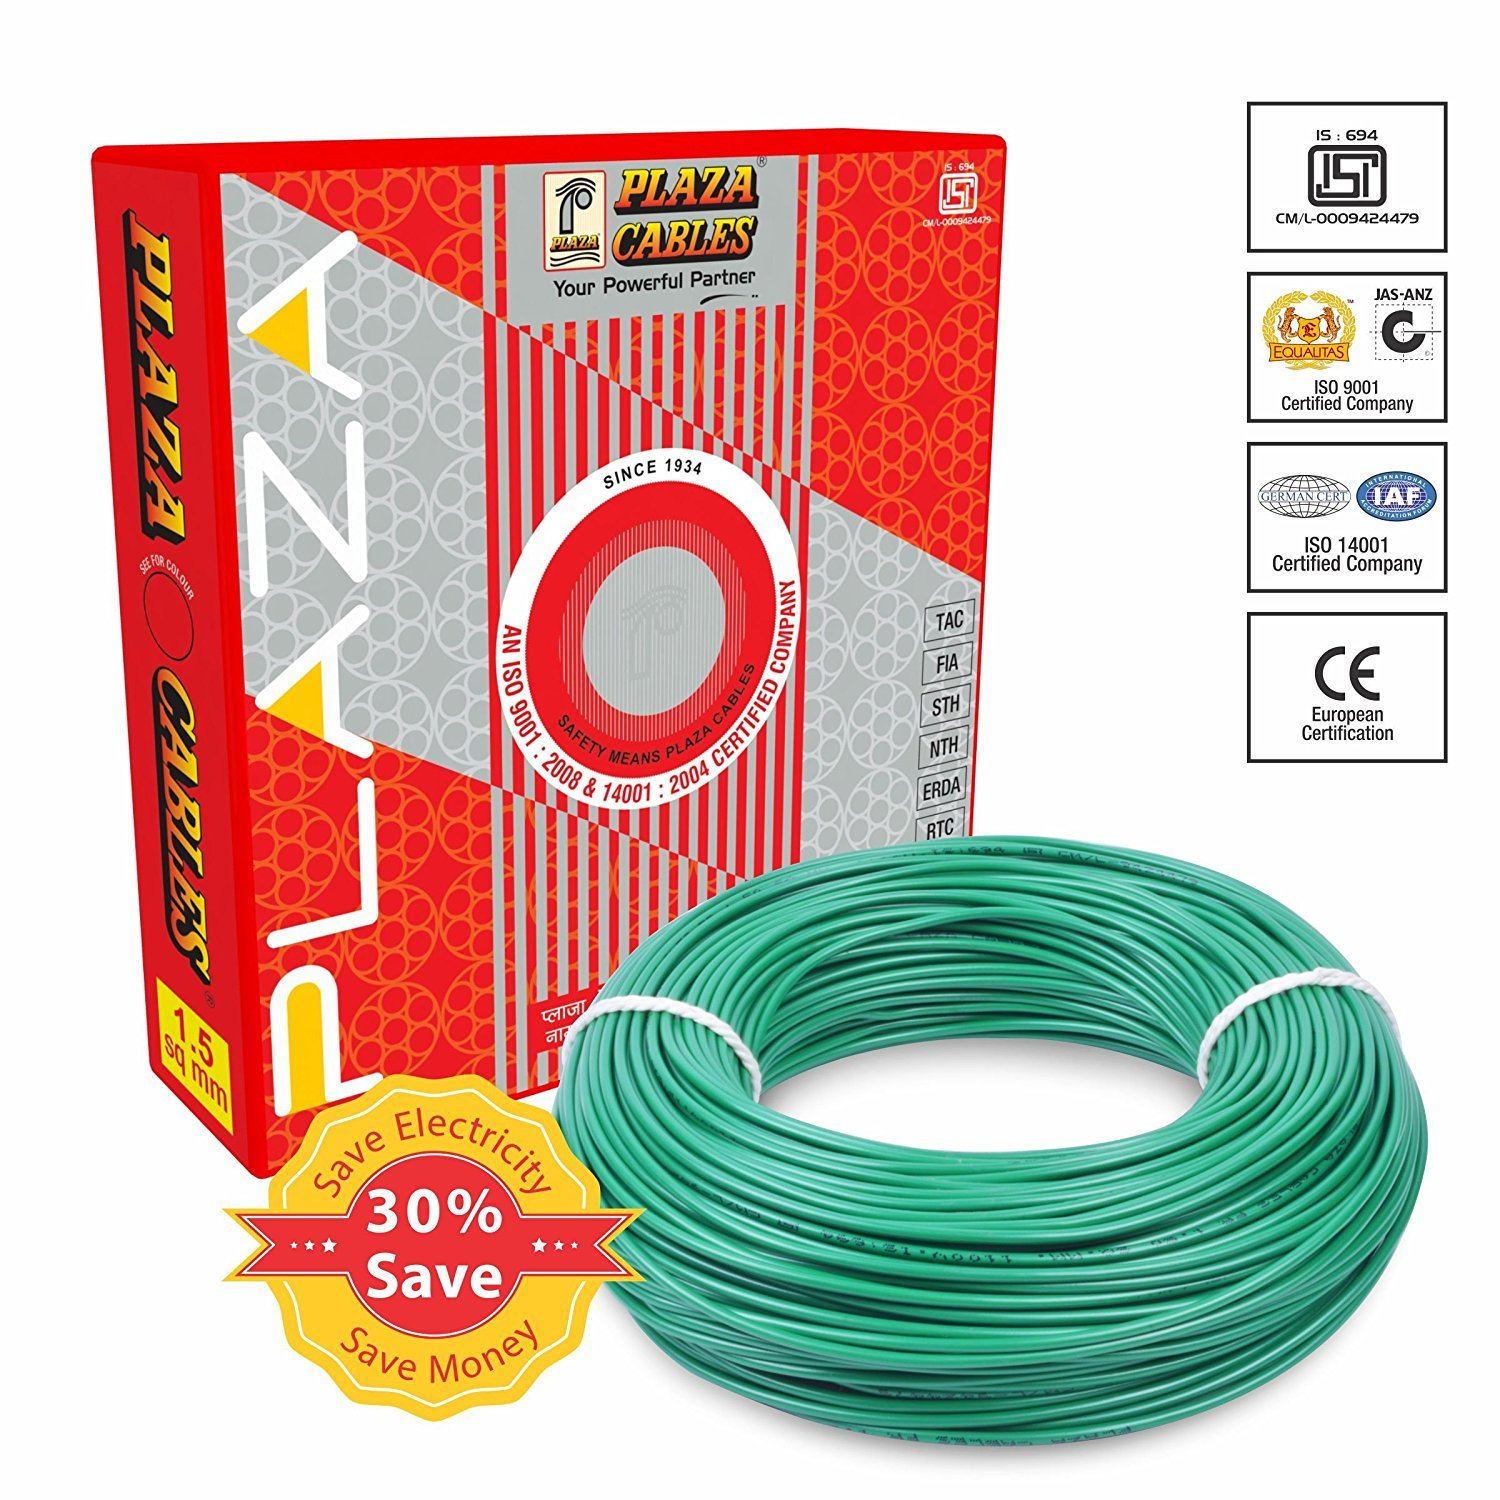 PLAZA PVC Insulated 2.5 Sq. mm Cable (Green, 90m): Amazon.in ... on